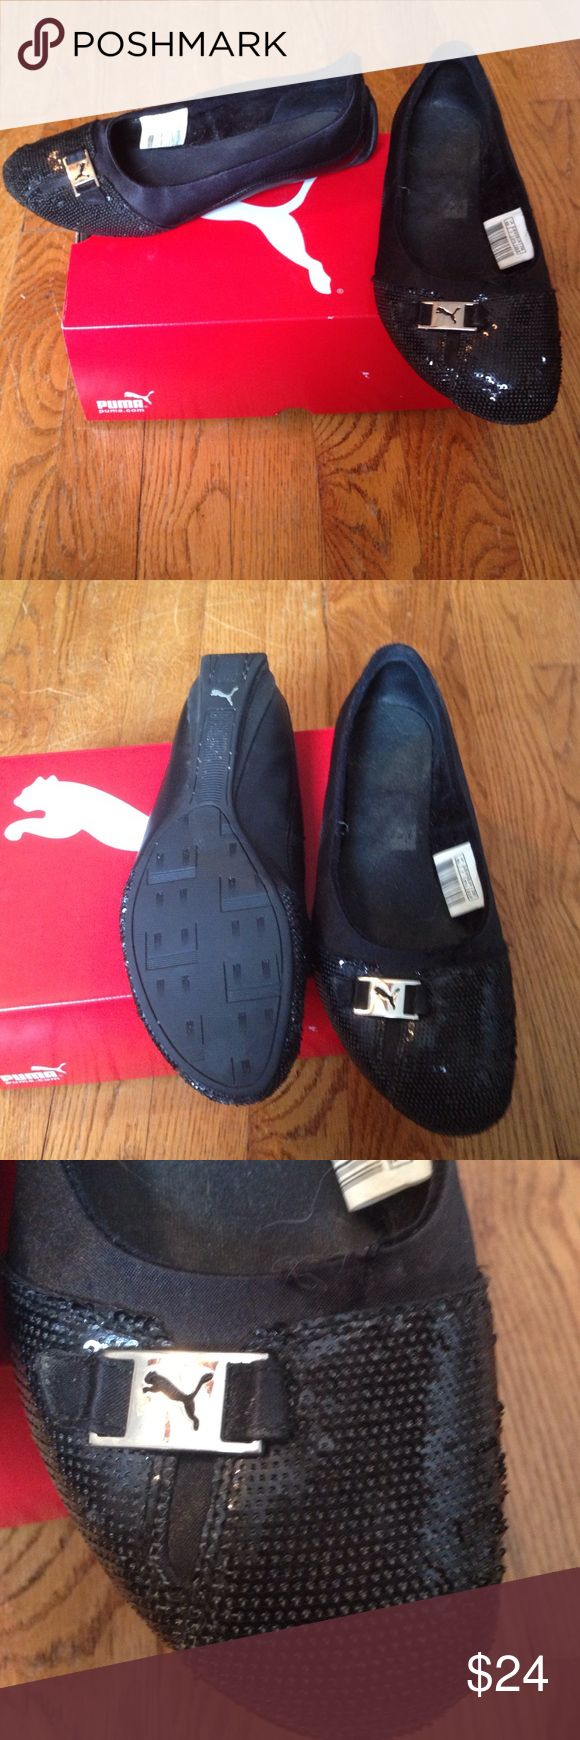 Puma black sequined flats size 7 Gently used black sequined Puma flats size 7. Comes in original box Puma Shoes Flats & Loafers